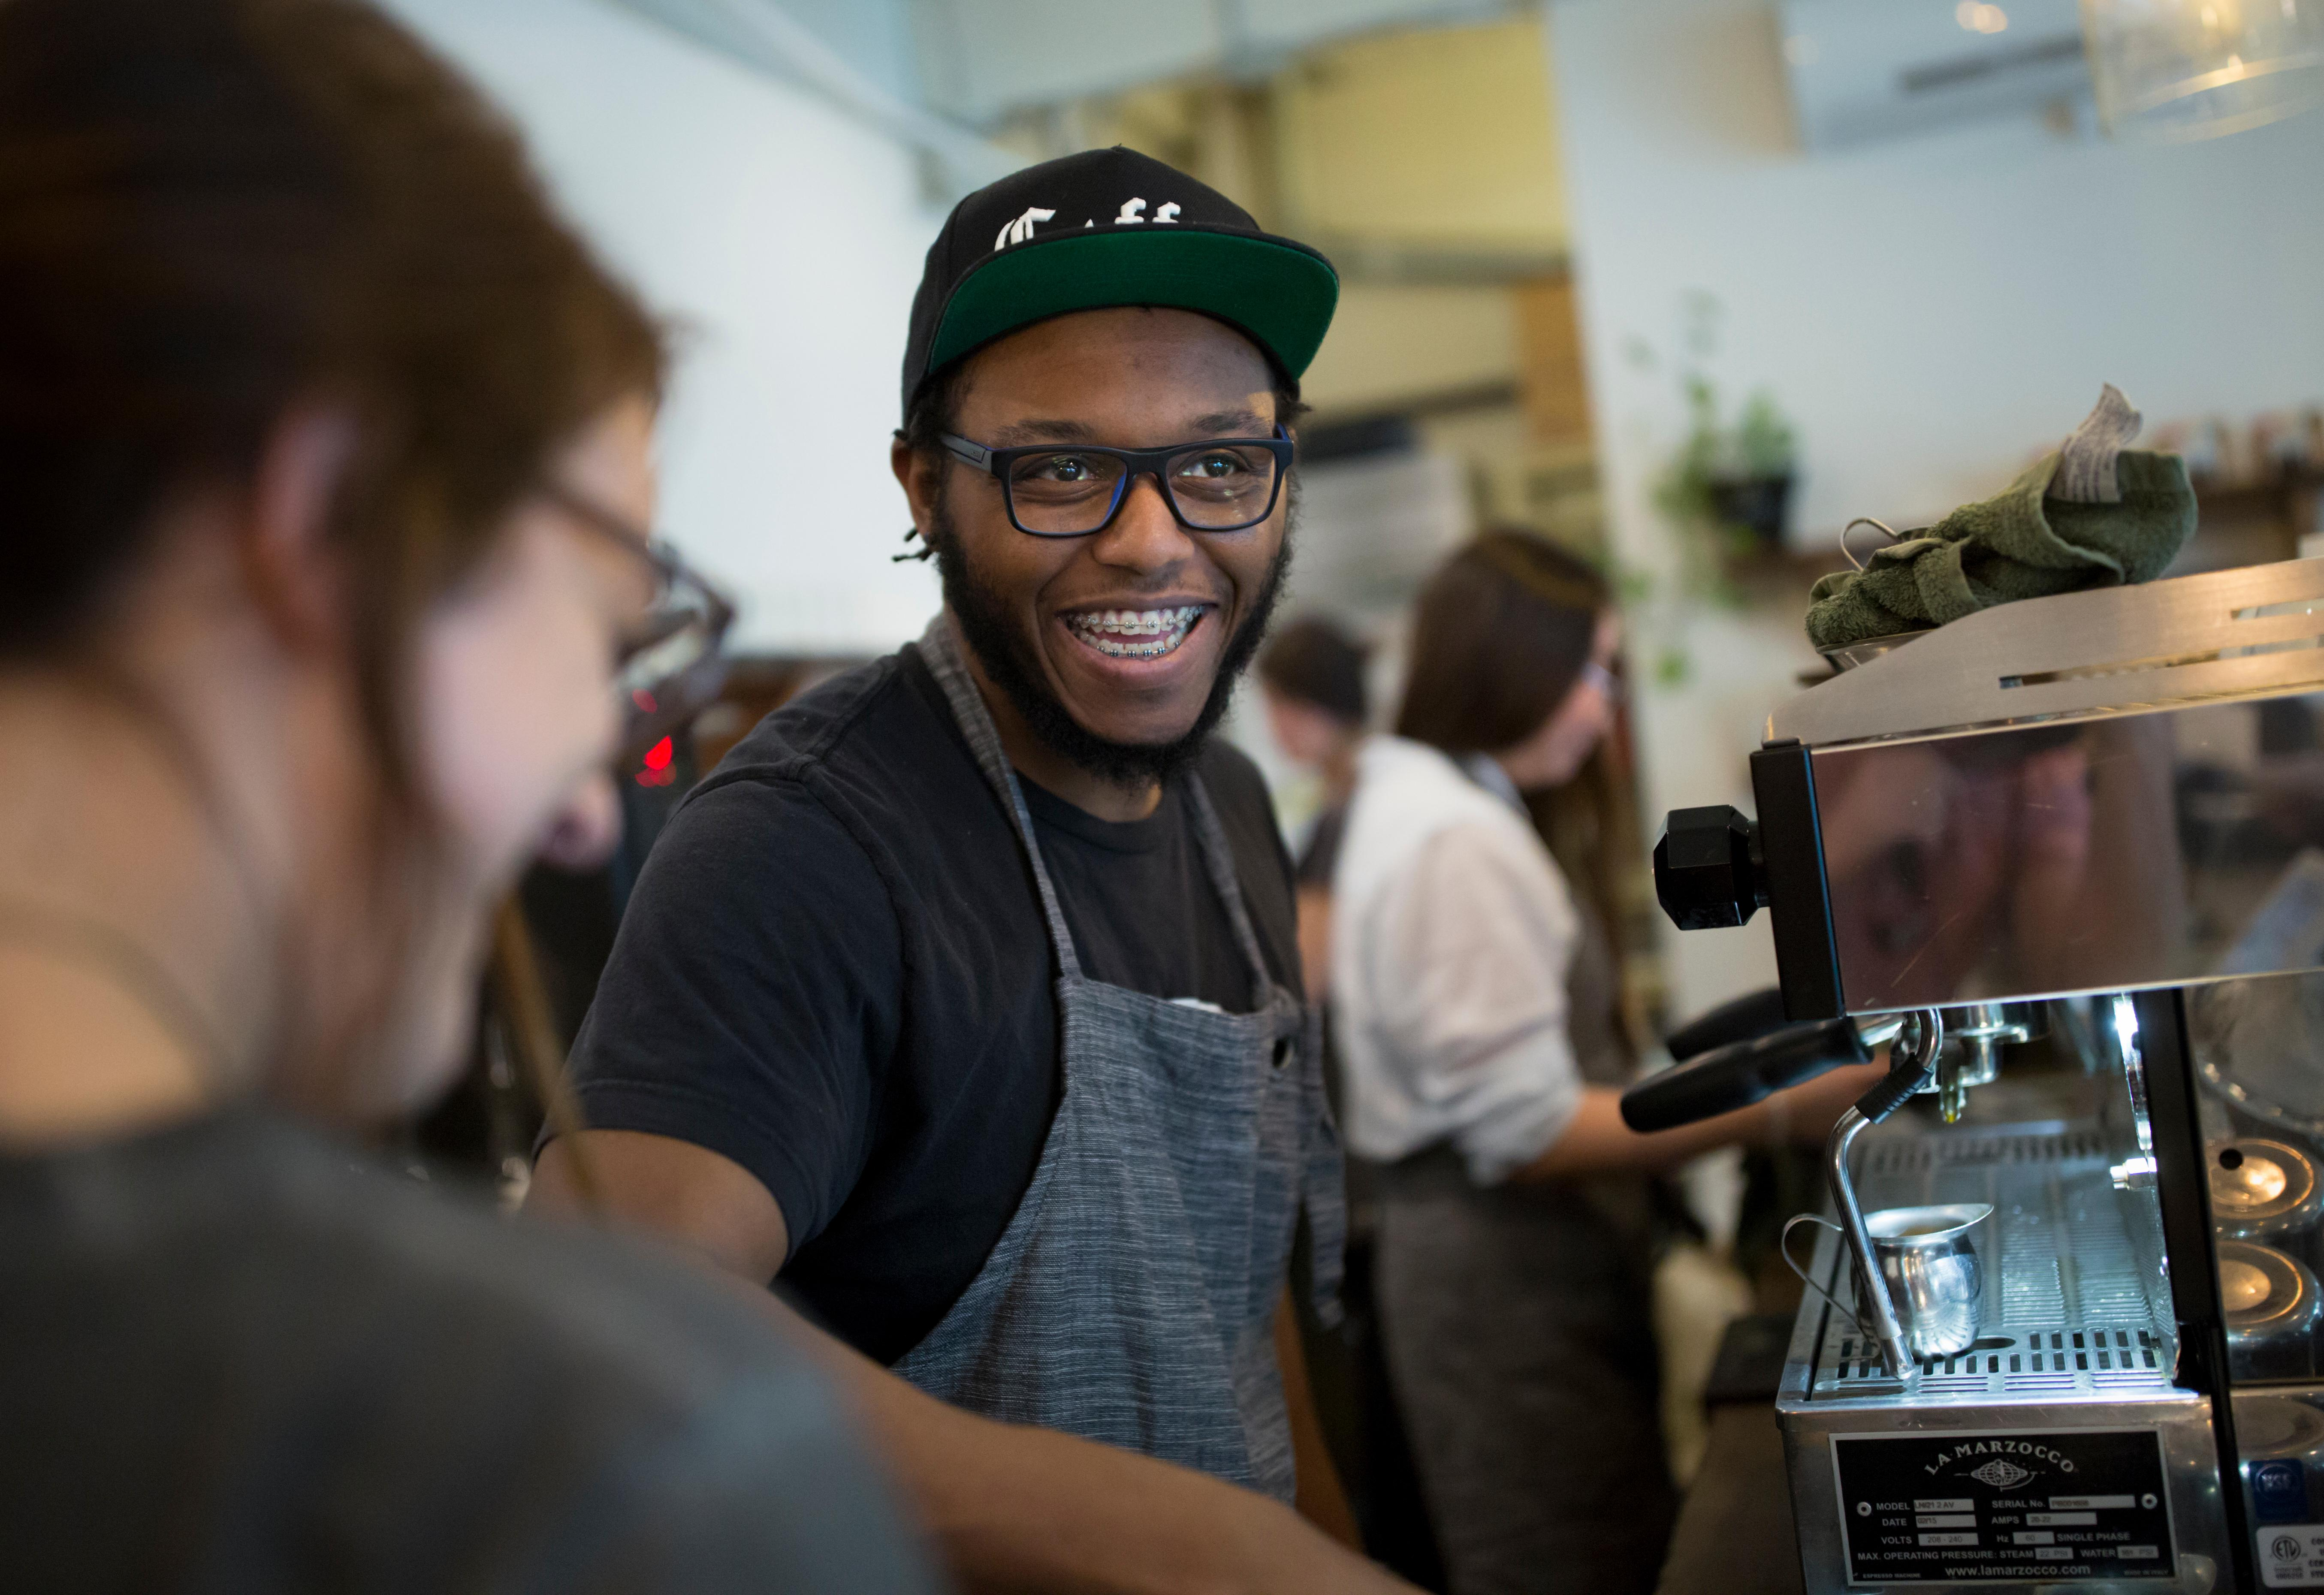 Shift Supervisor Anthony Harris laughs with a coworker as he pours a cup of coffee at Street Bean Coffee Roasters, a local coffee shop and non-profit that's dedicated to providing work opportunities for street-involved youth. Harris graduated from the roaster's apprenticeship program, and is now working full time. (Sy Bean / Seattle Refined)